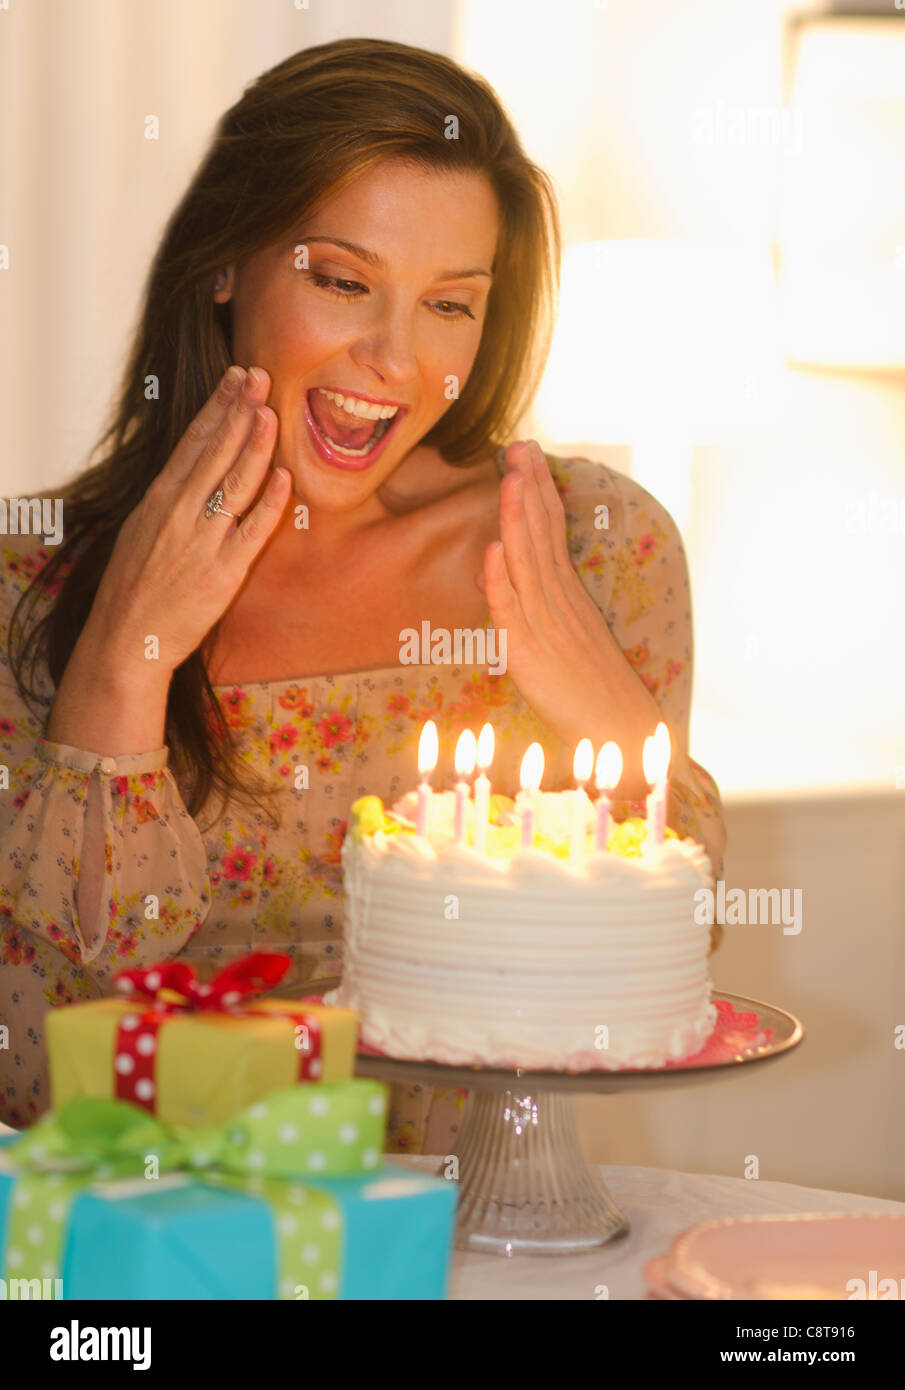 USA New Jersey City Woman Looking At Birthday Cake